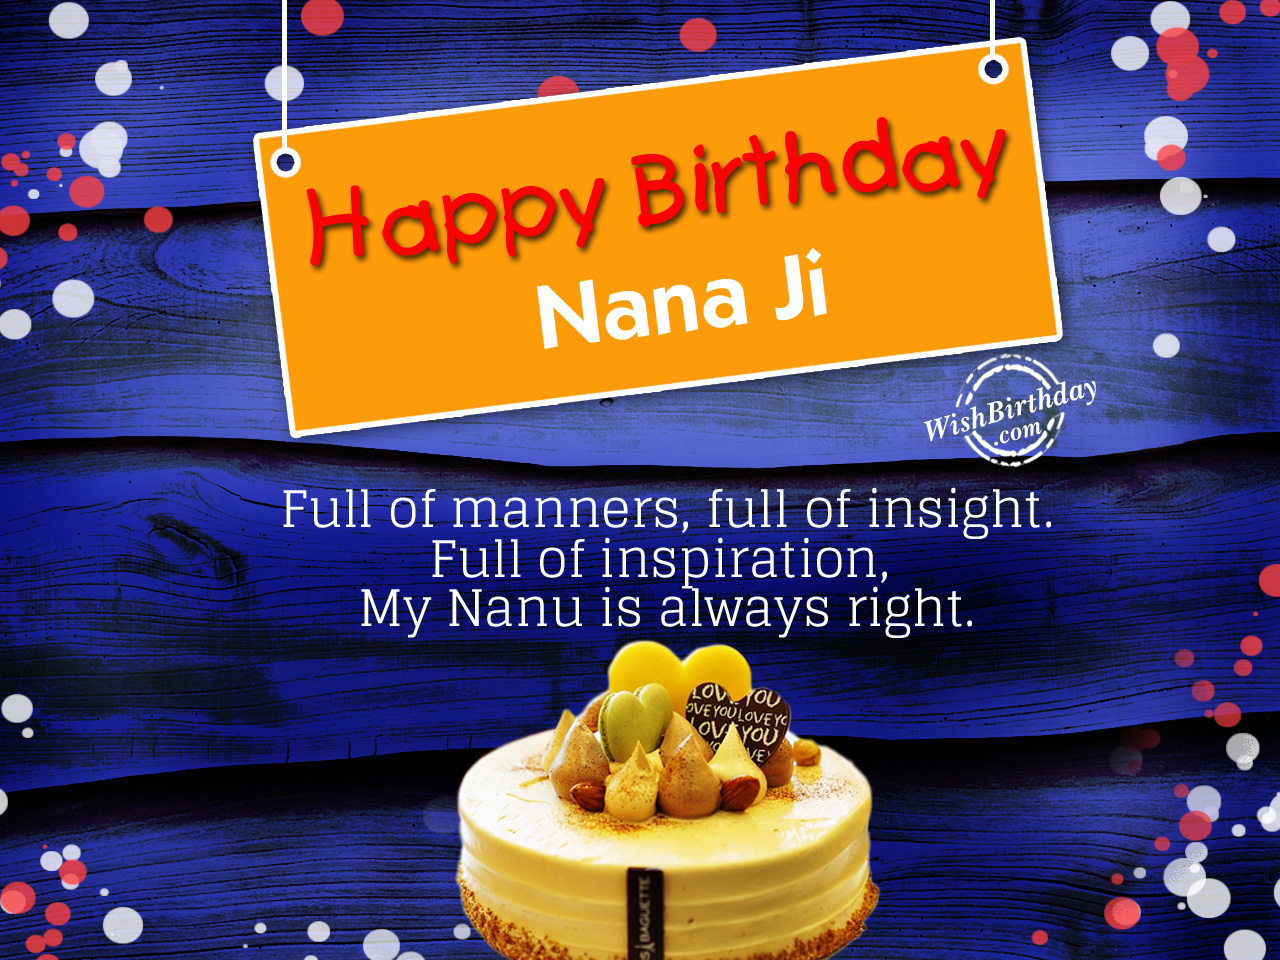 Birthday Wishes For Nana Ji Birthday Images Pictures Happy Birthday Wisdom Wishes